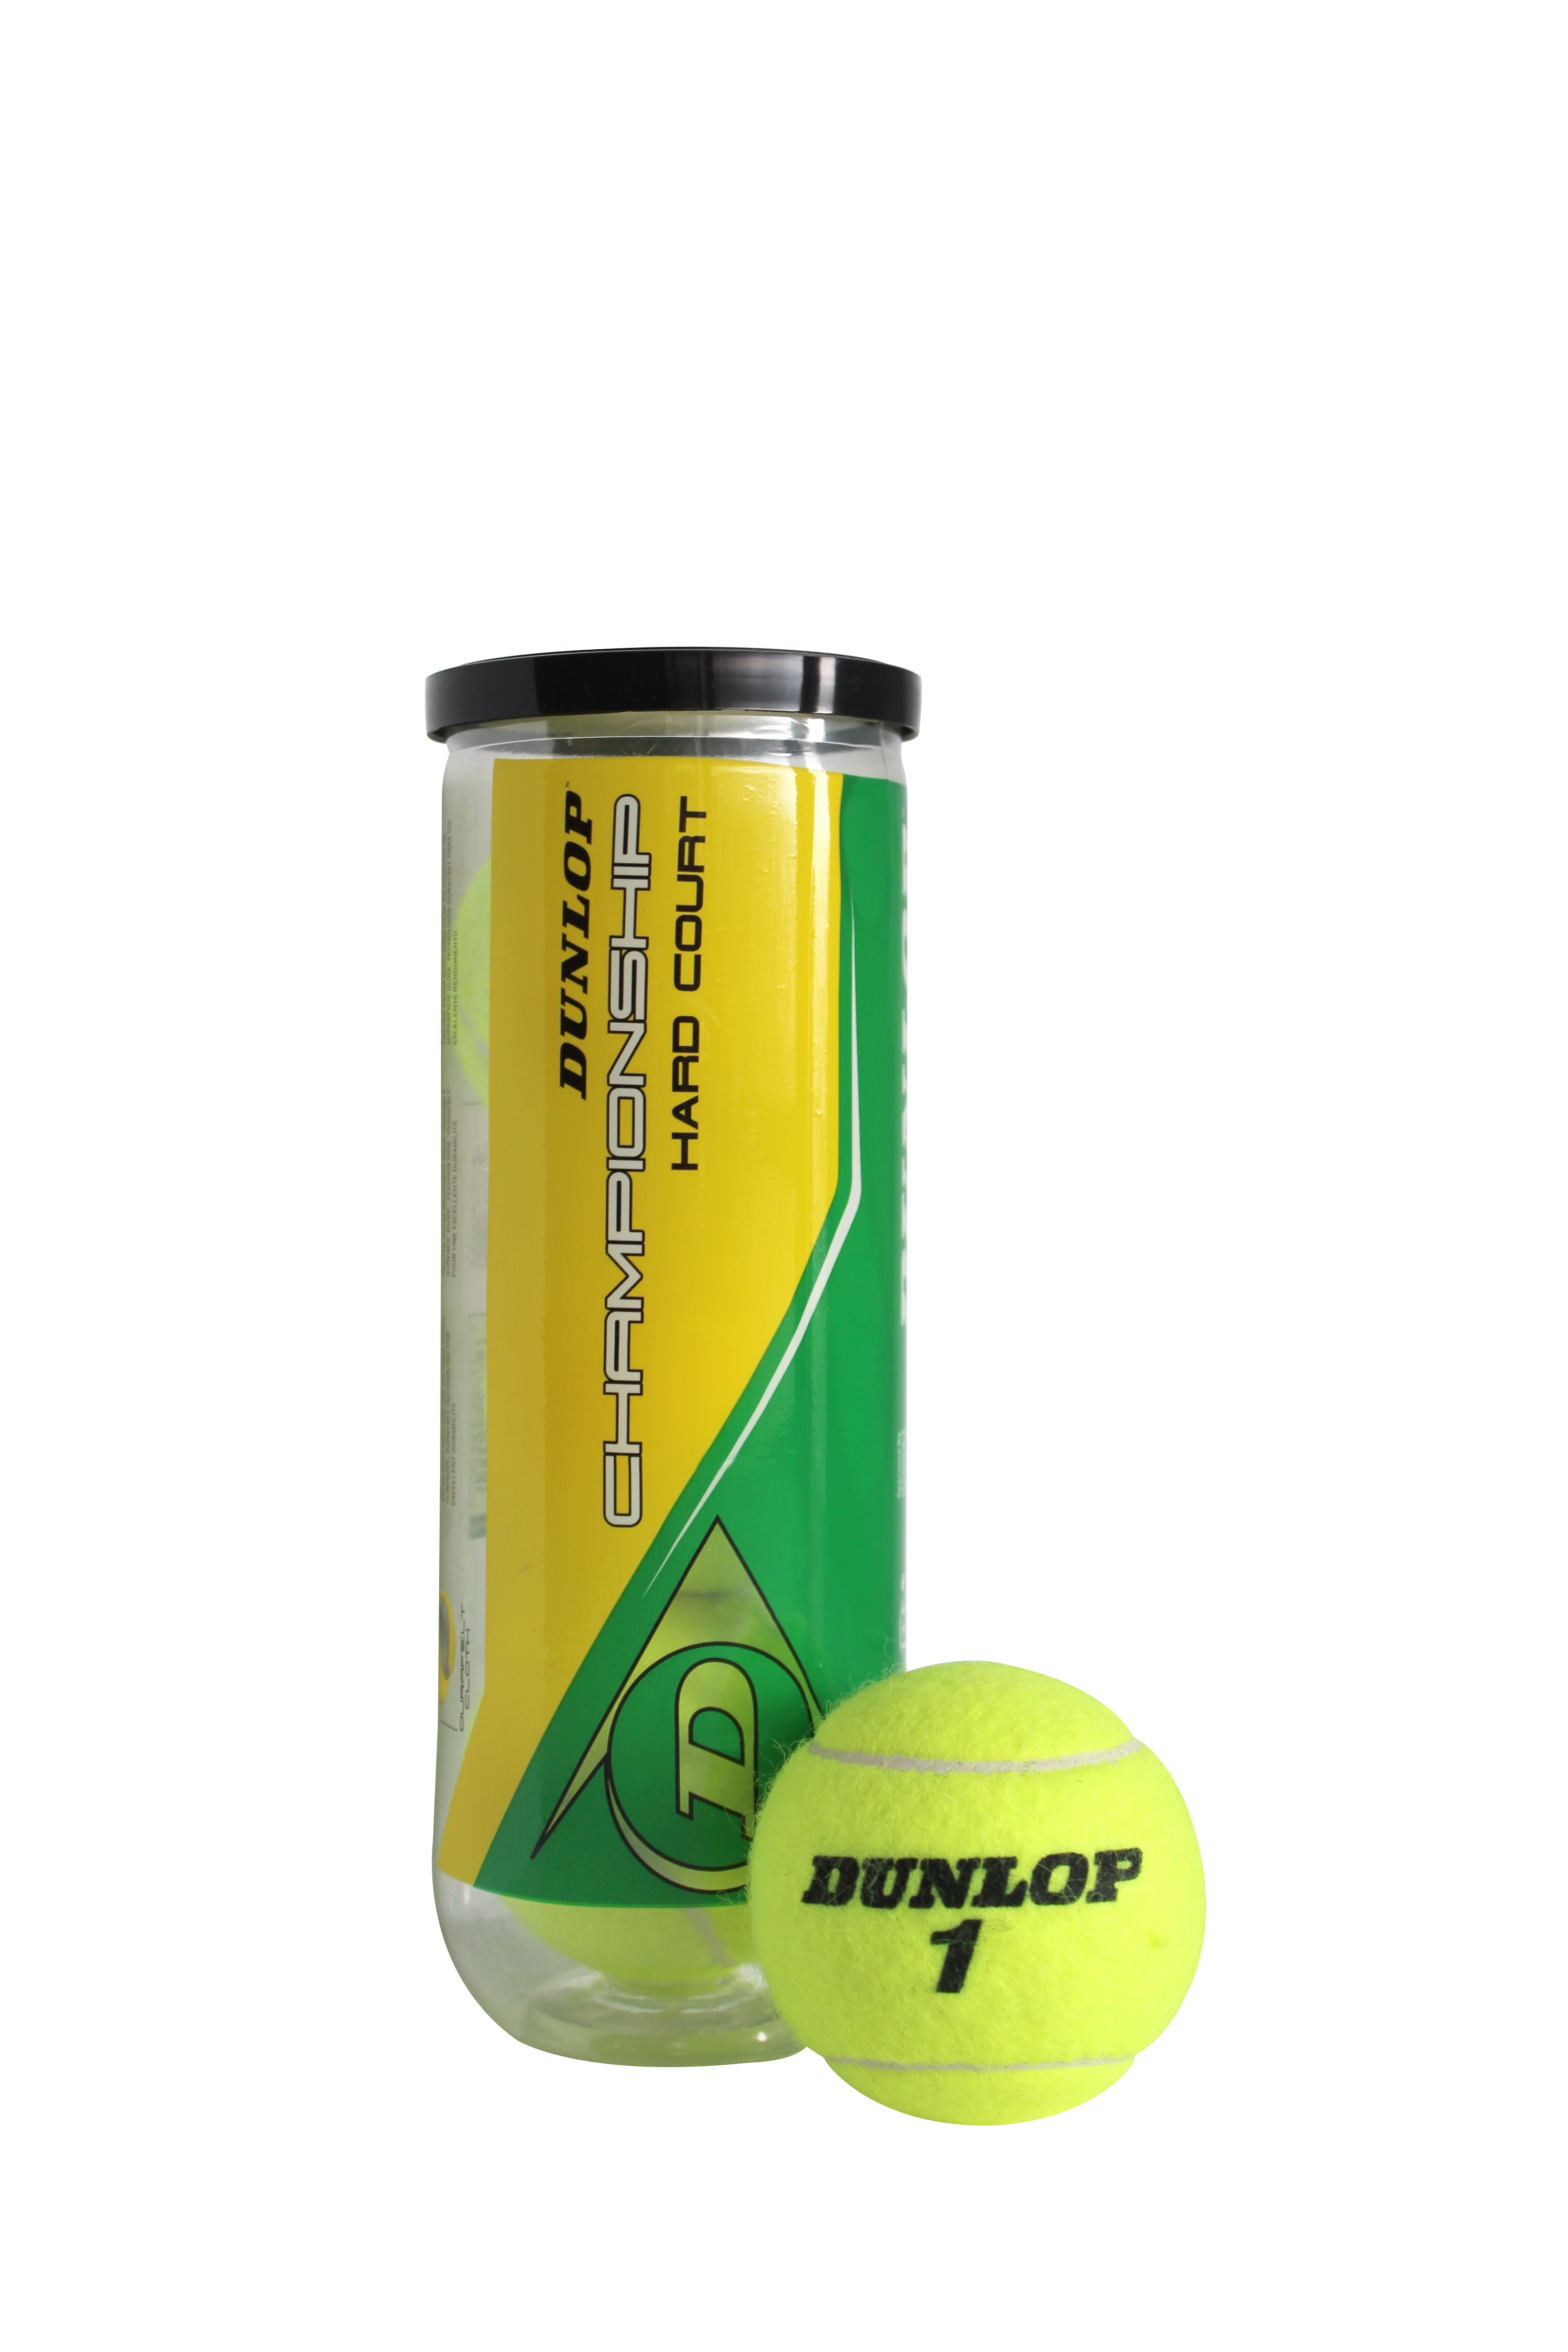 Dunlop 3 Ball Hc High Altitude Tennis Balls Lawler Sports